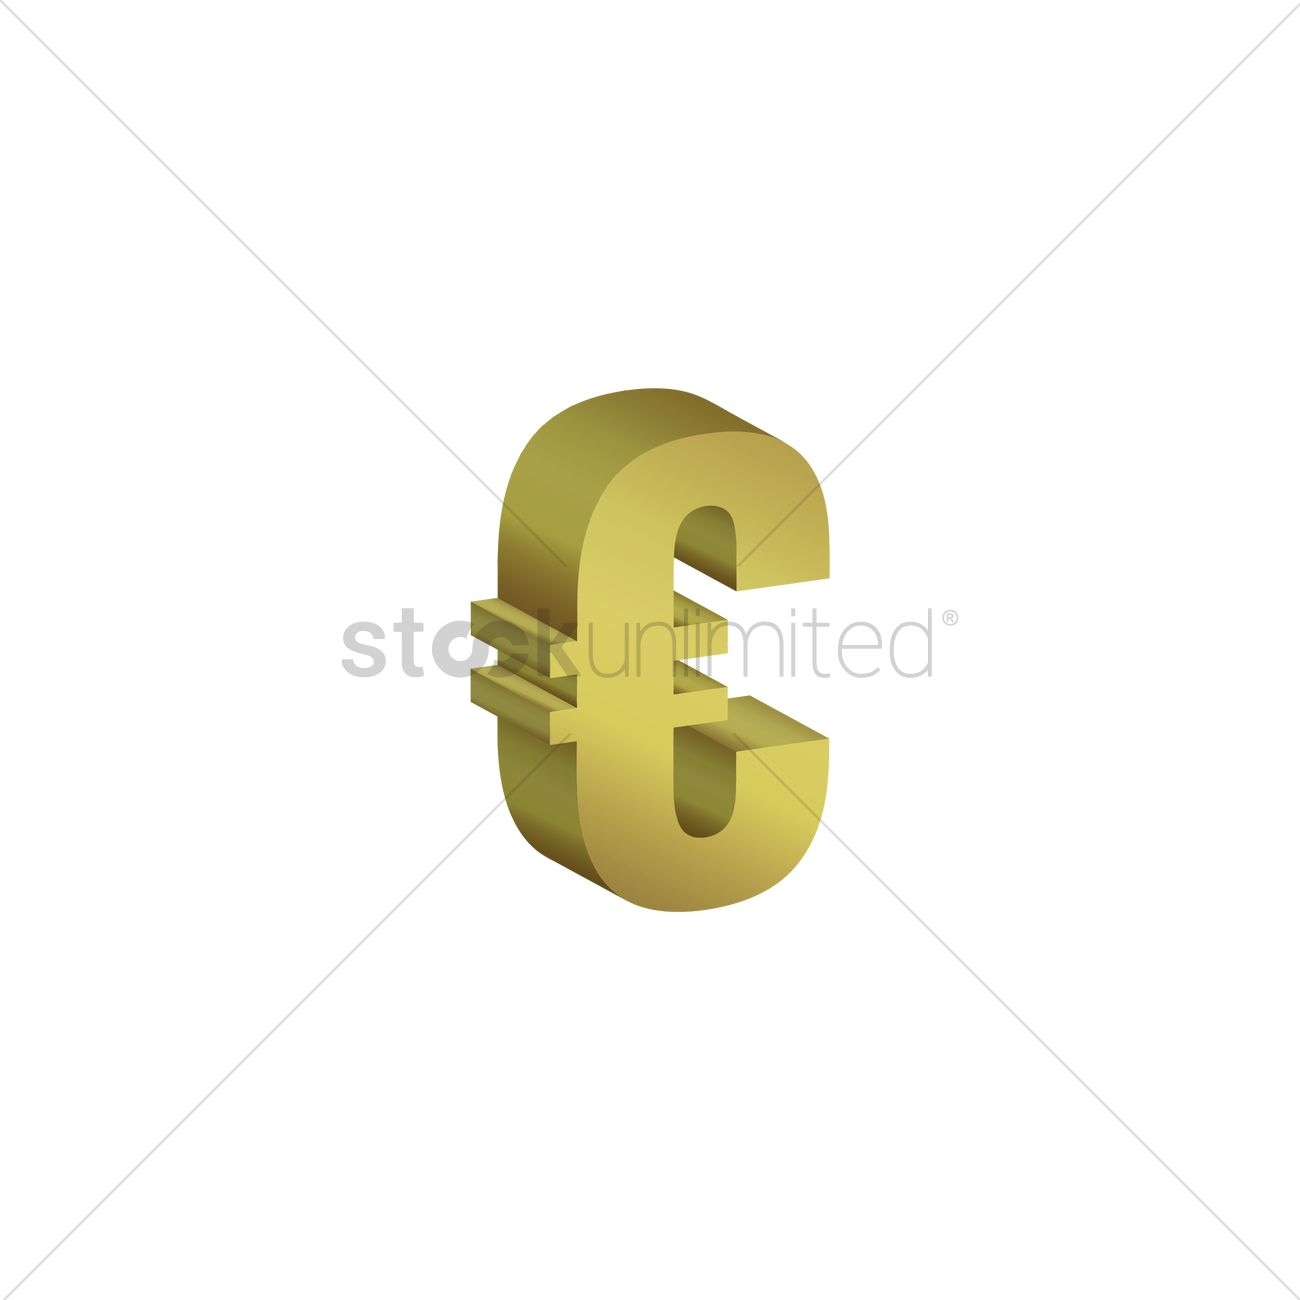 Euro Currency Symbol Vector Image 1611442 Stockunlimited